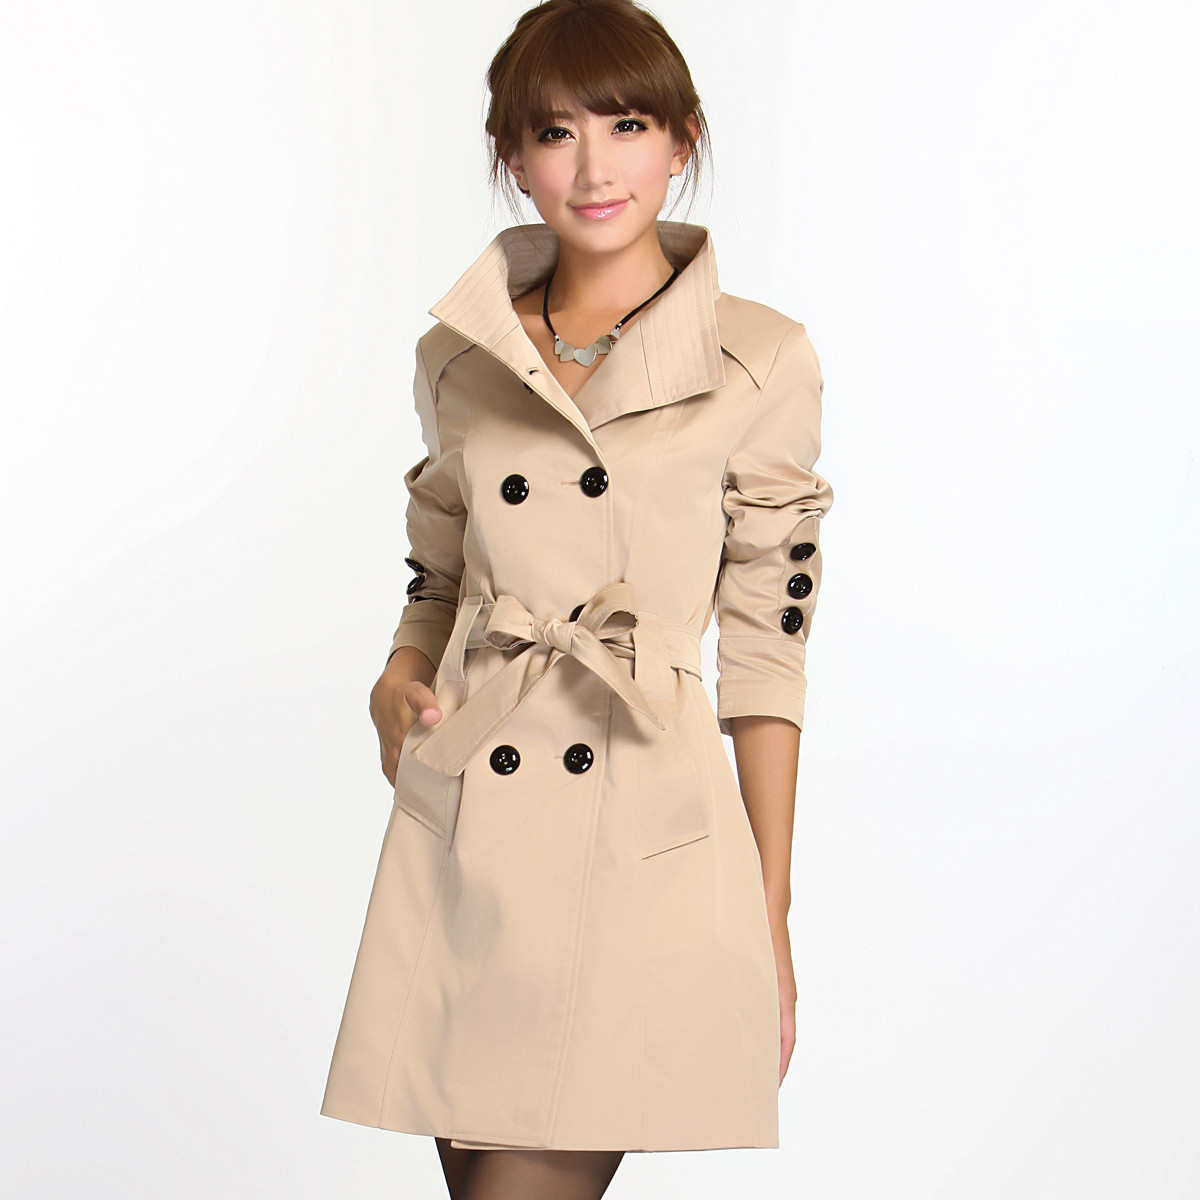 A girl in coat